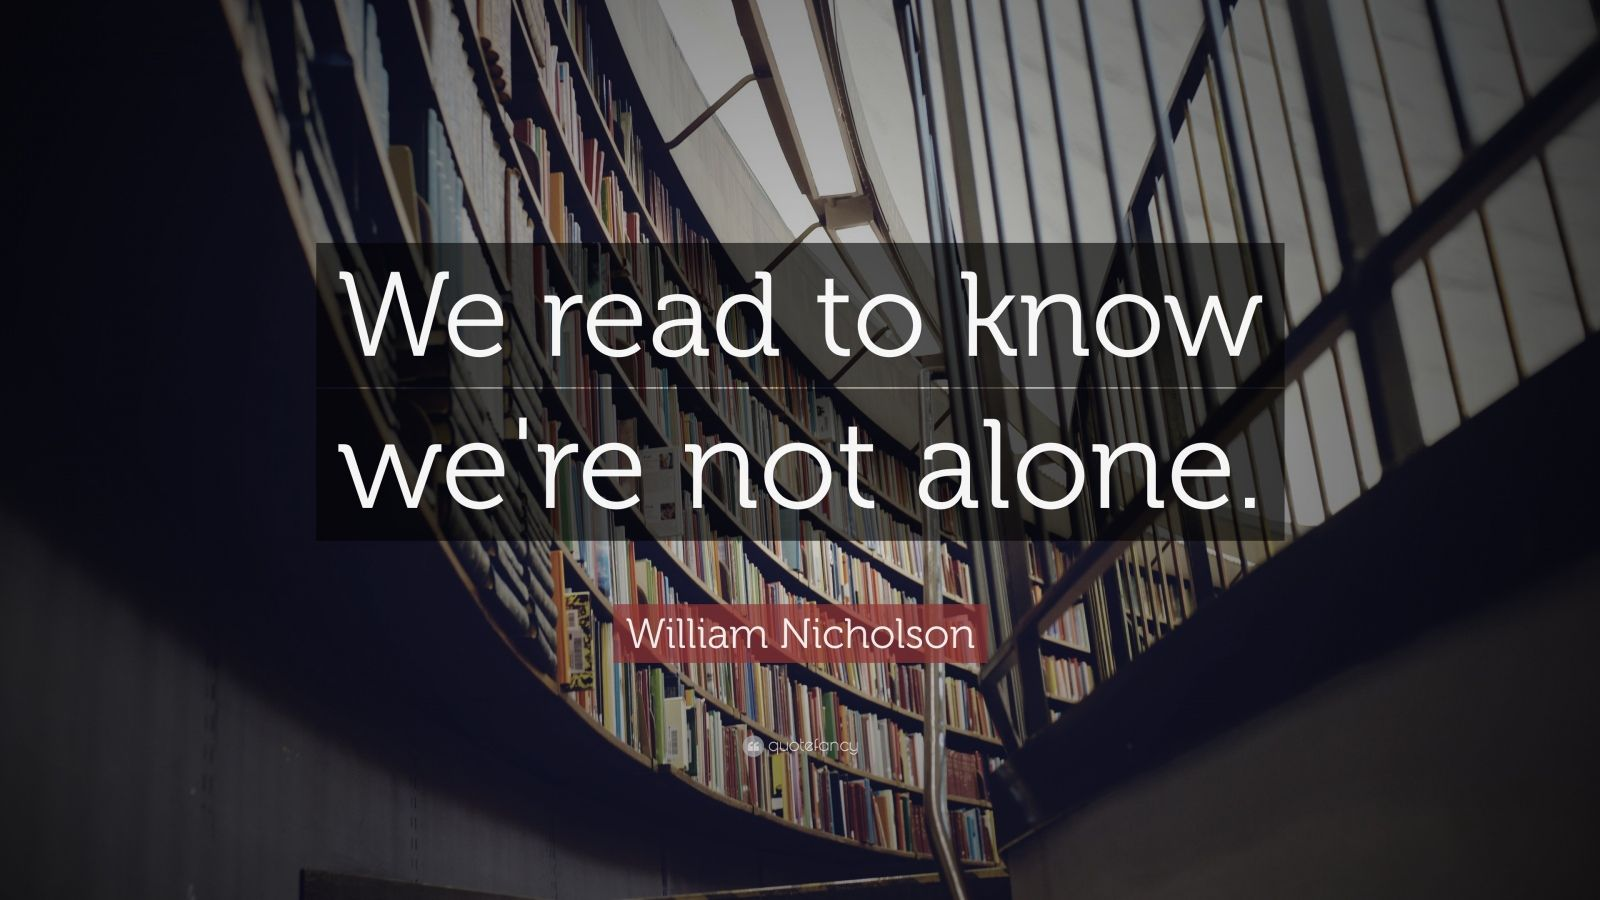 we read to know we are not alone essay William nicholson — 'we read to know we're not alone'.